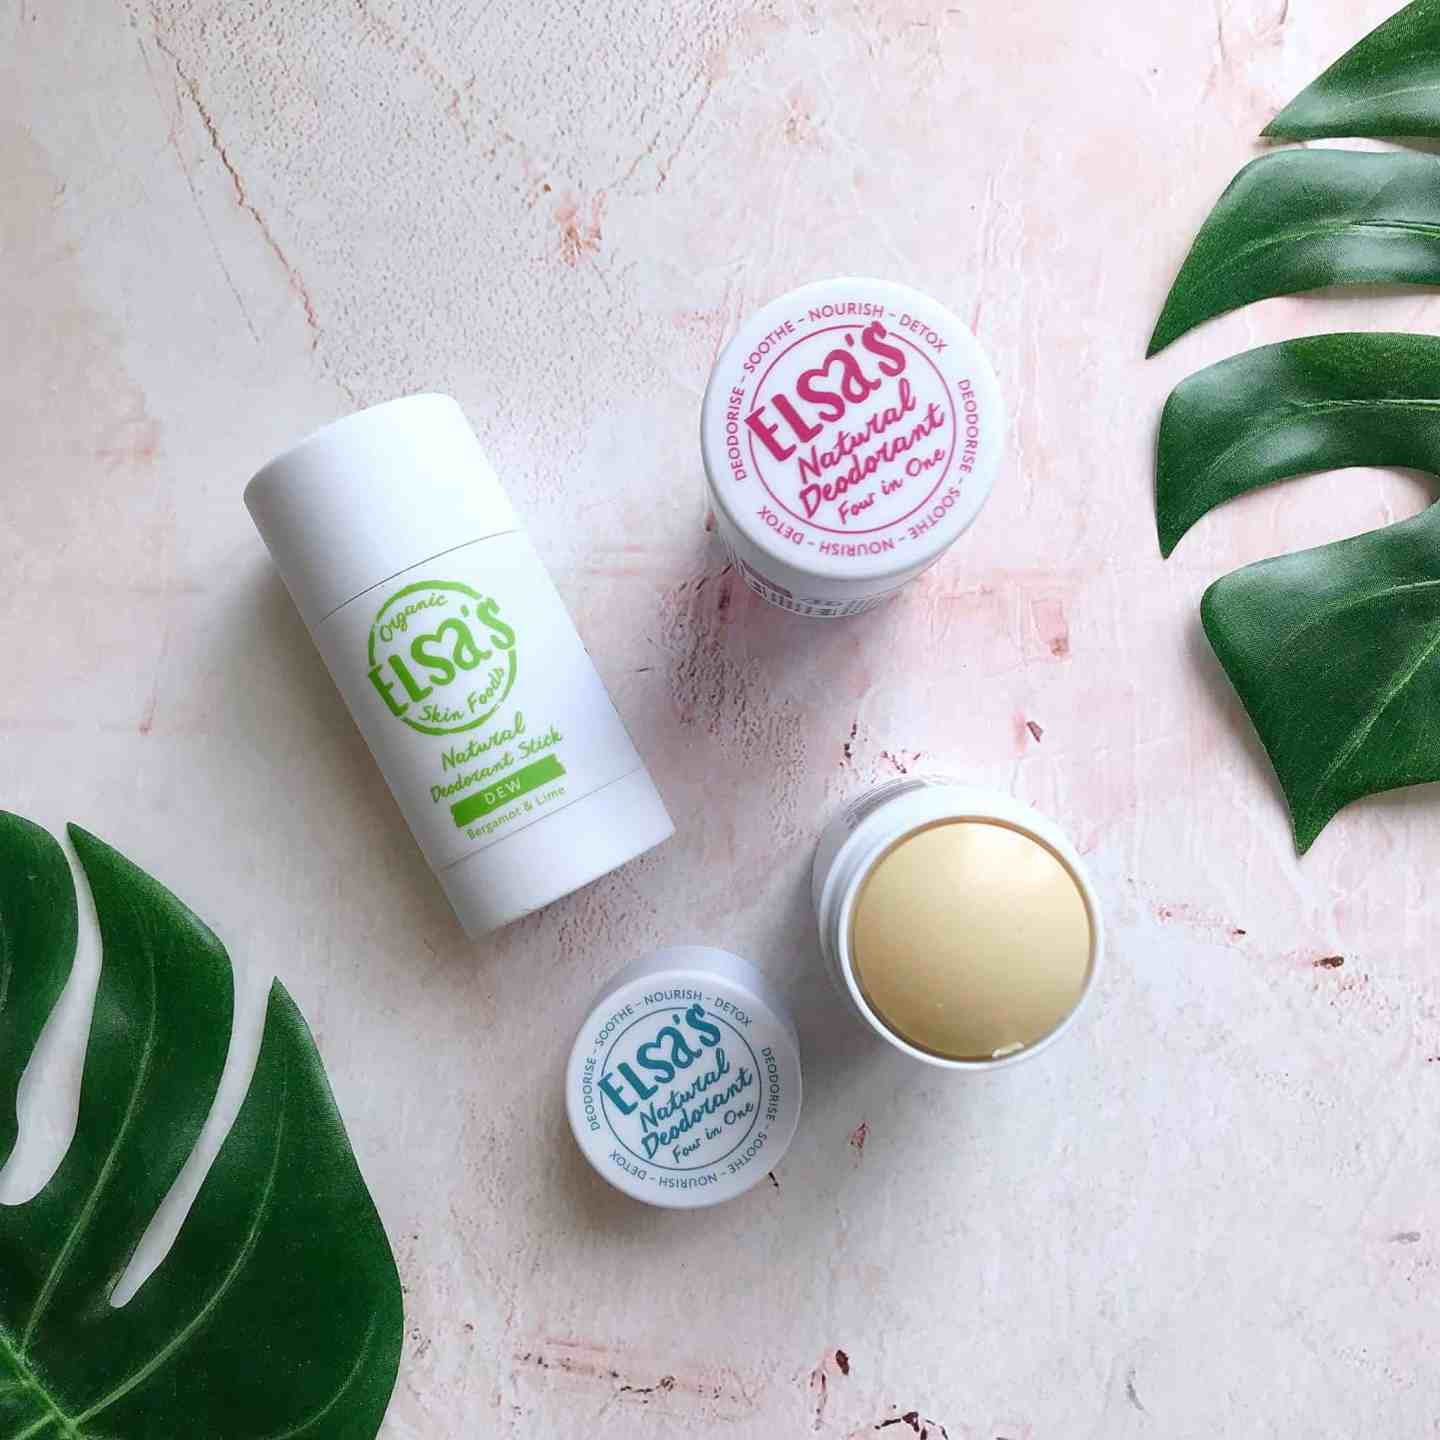 100% natural deodorant that works, in Dew, Love and Ocean